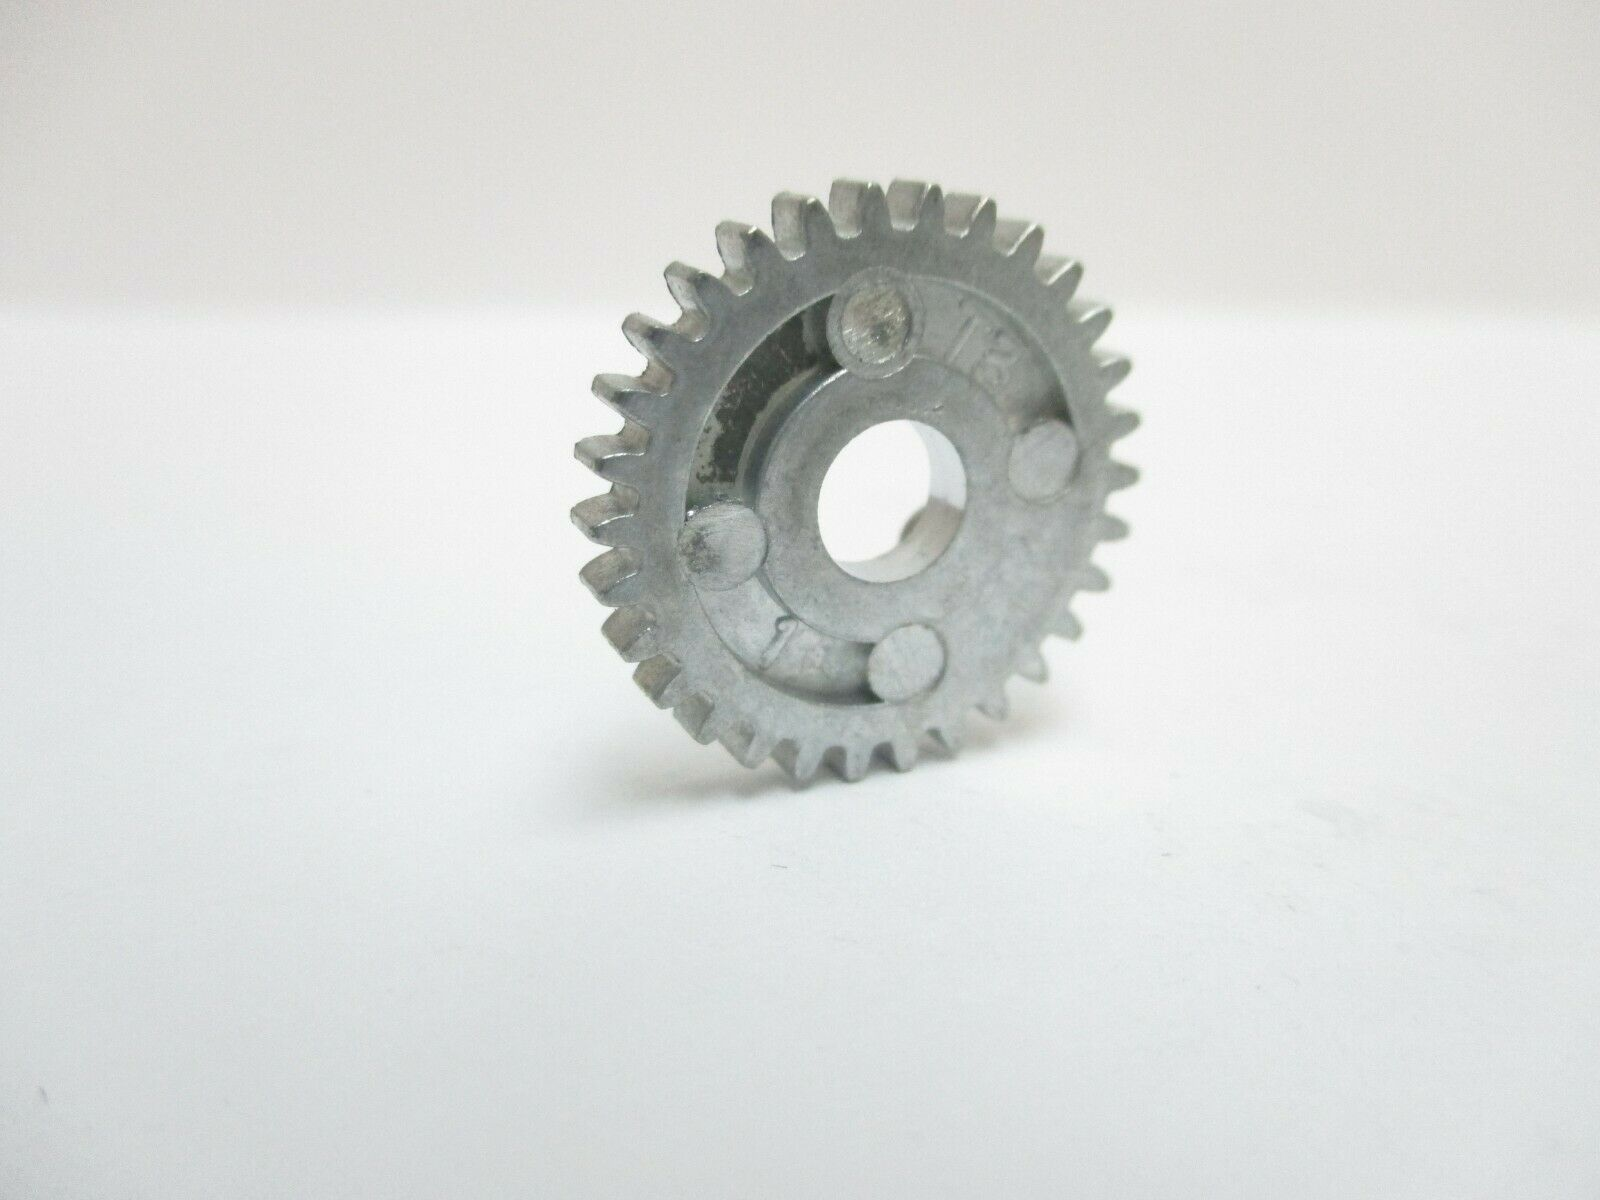 NEW SHIMANO SPINNING REEL PART RD1934 Drive Gear